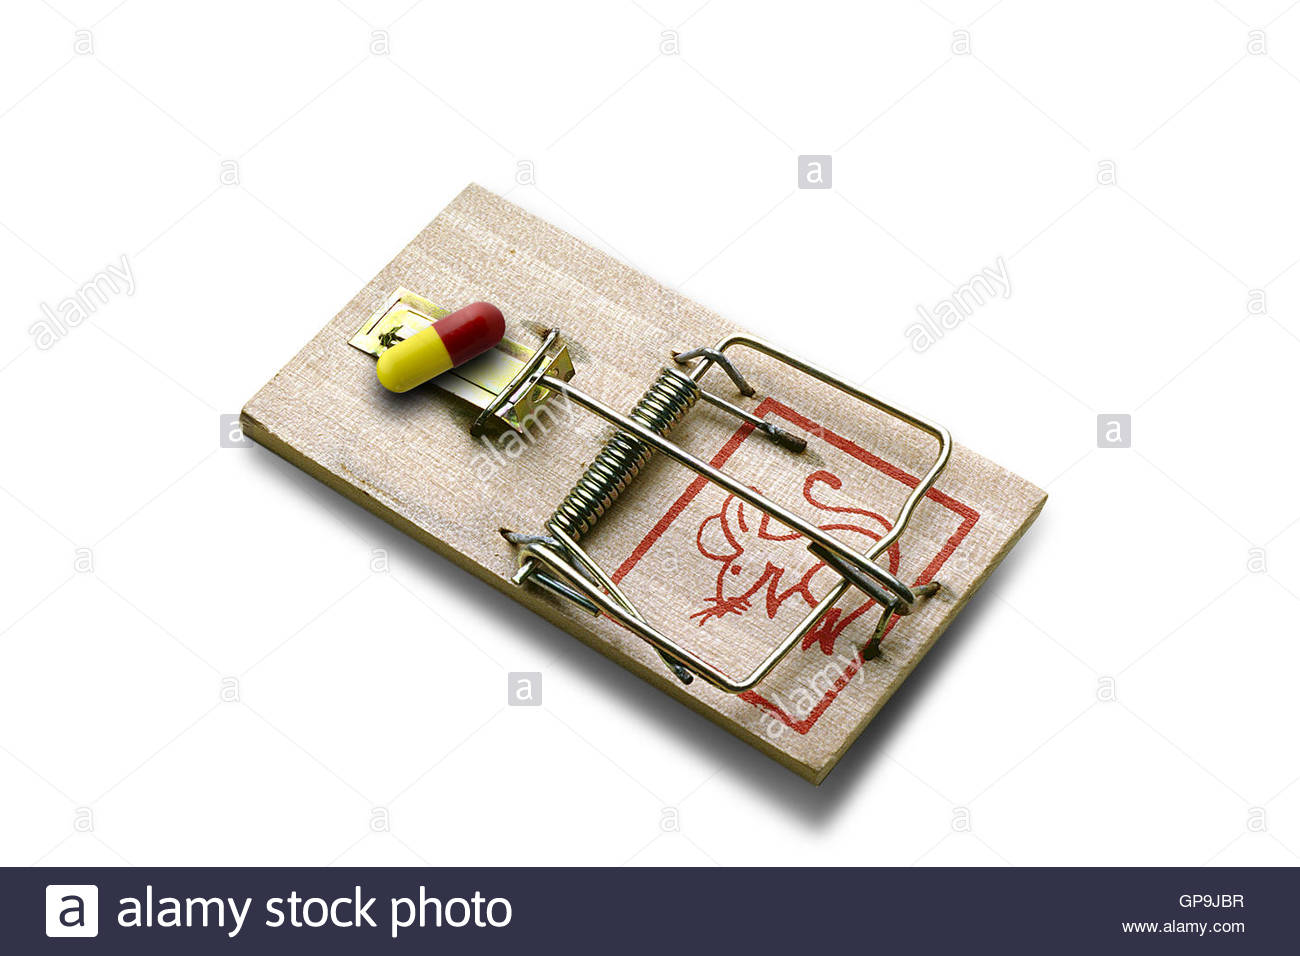 Medical pill as bait on a mousetrap. - Stock Image